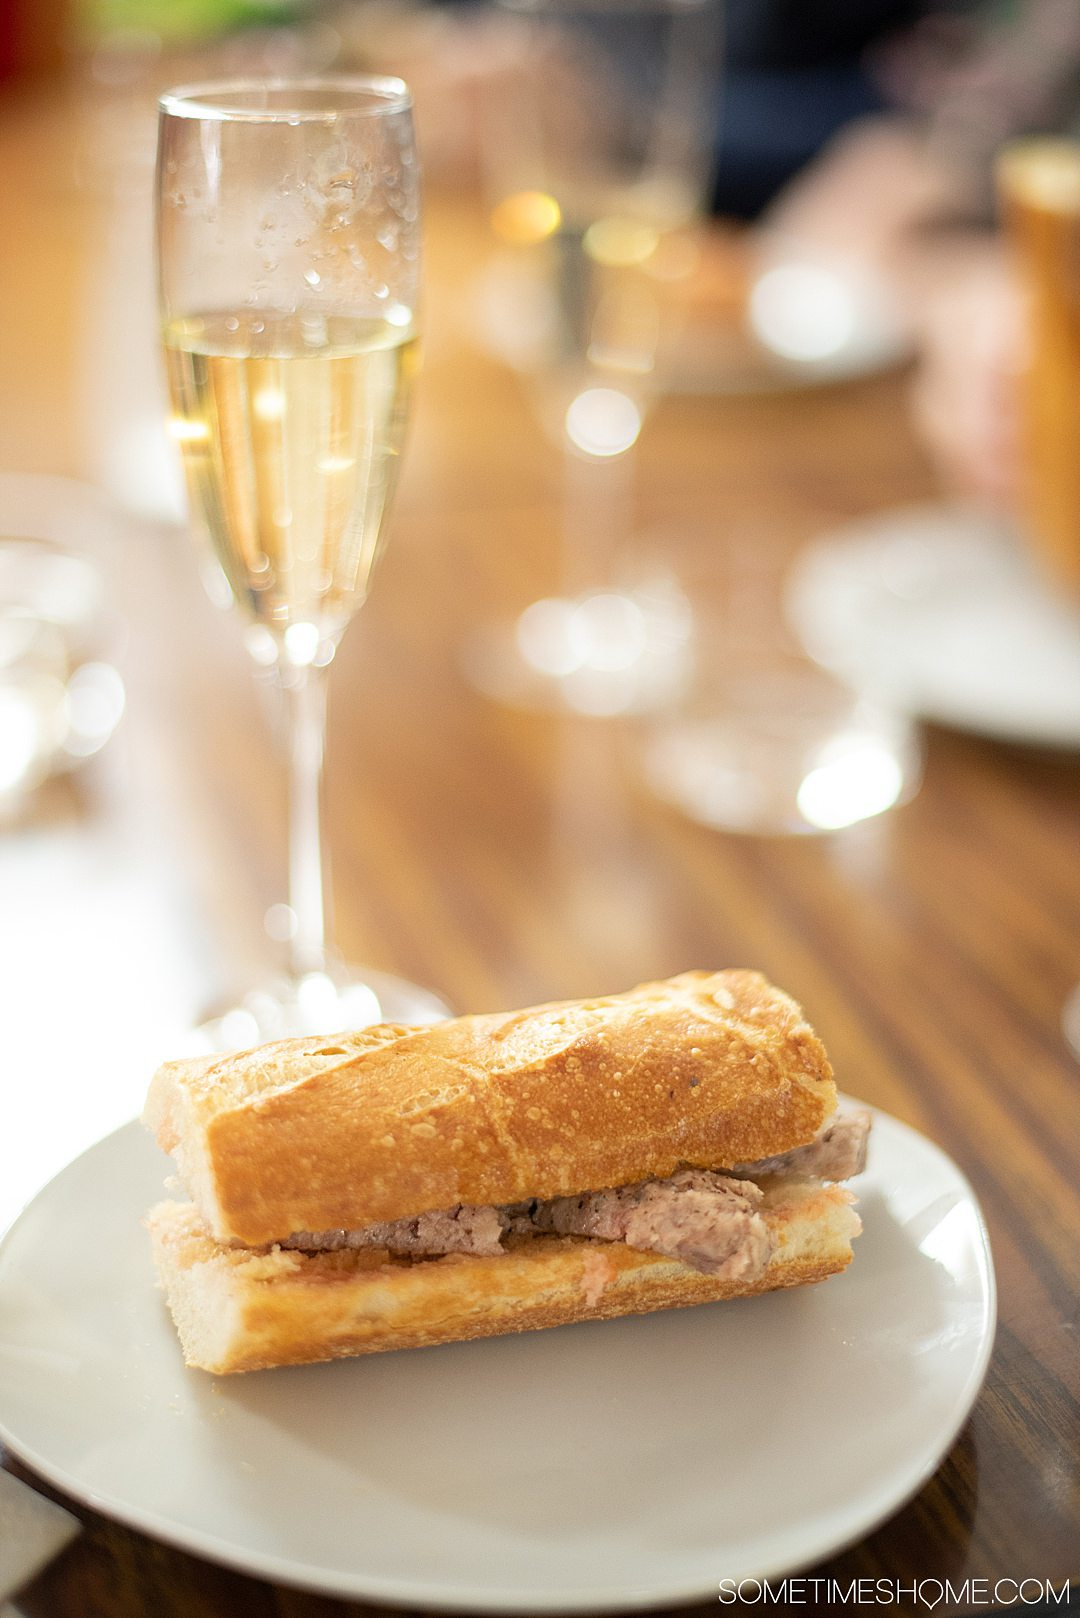 Spanish sandwich with meat (pork) and a glass of cava